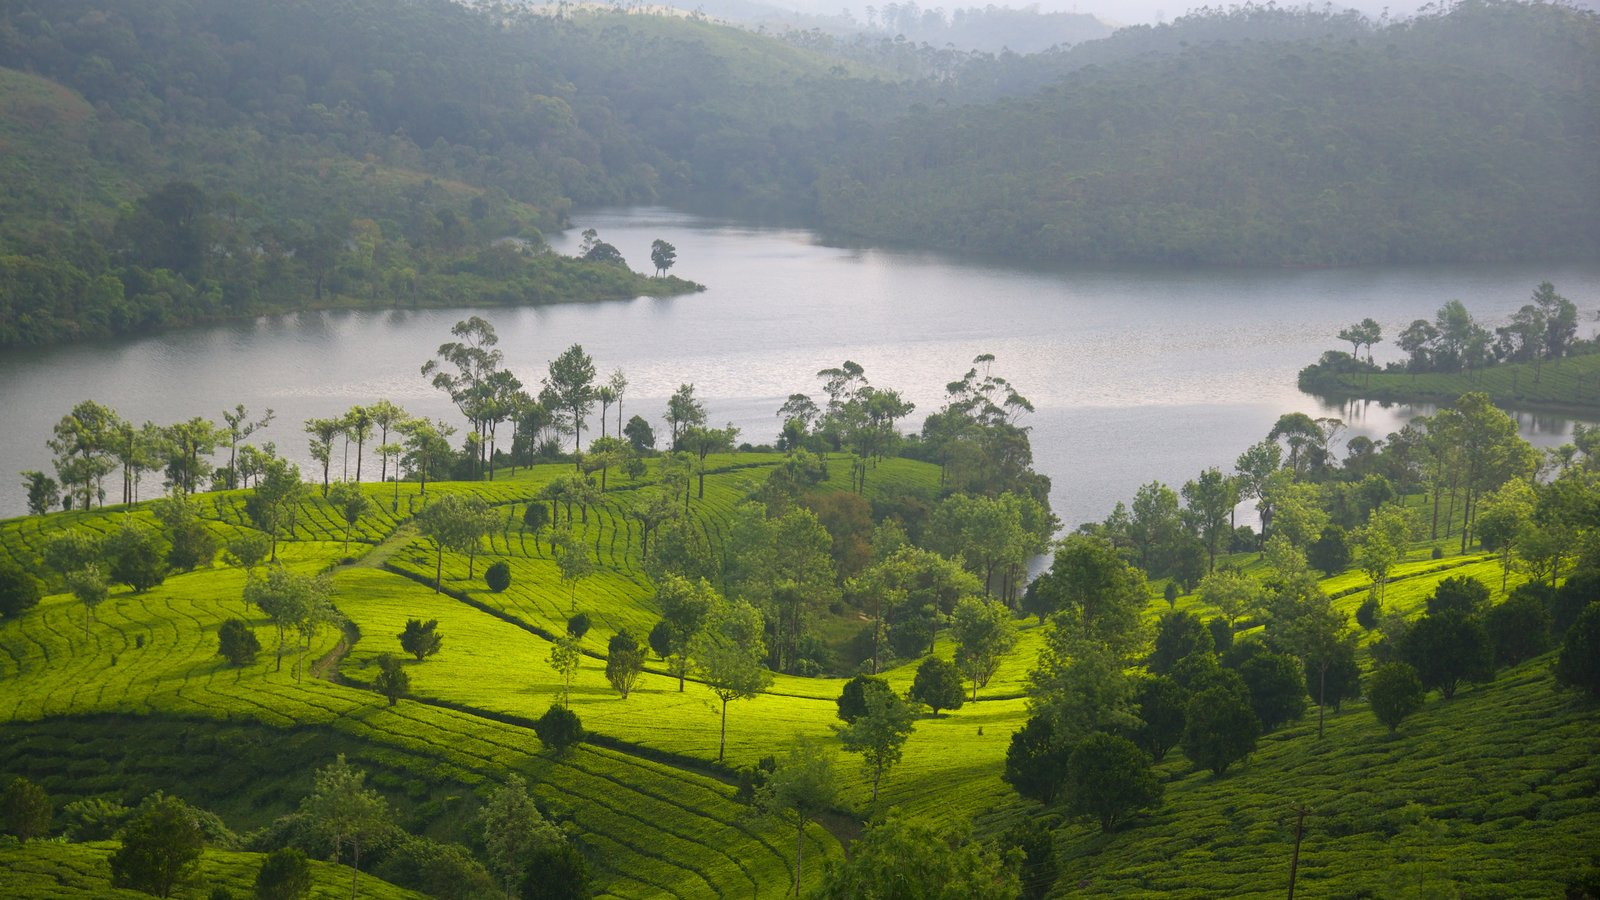 Munnar showing a lake or waterhole and tranquil scenes